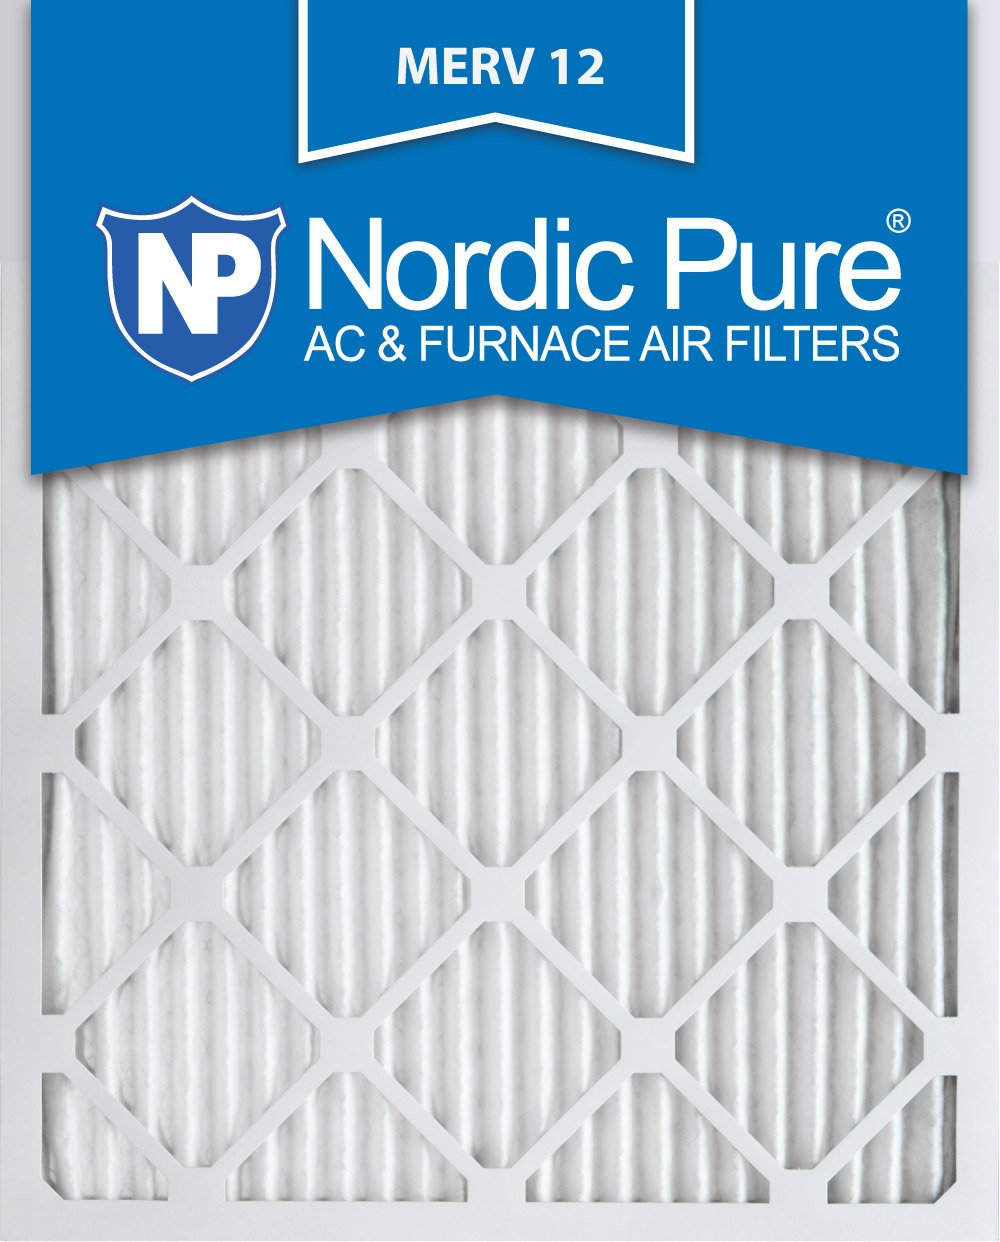 Nordic Pure 8x24x1 Exact MERV 12 Pleated AC Furnace Air Filters 1 Pack